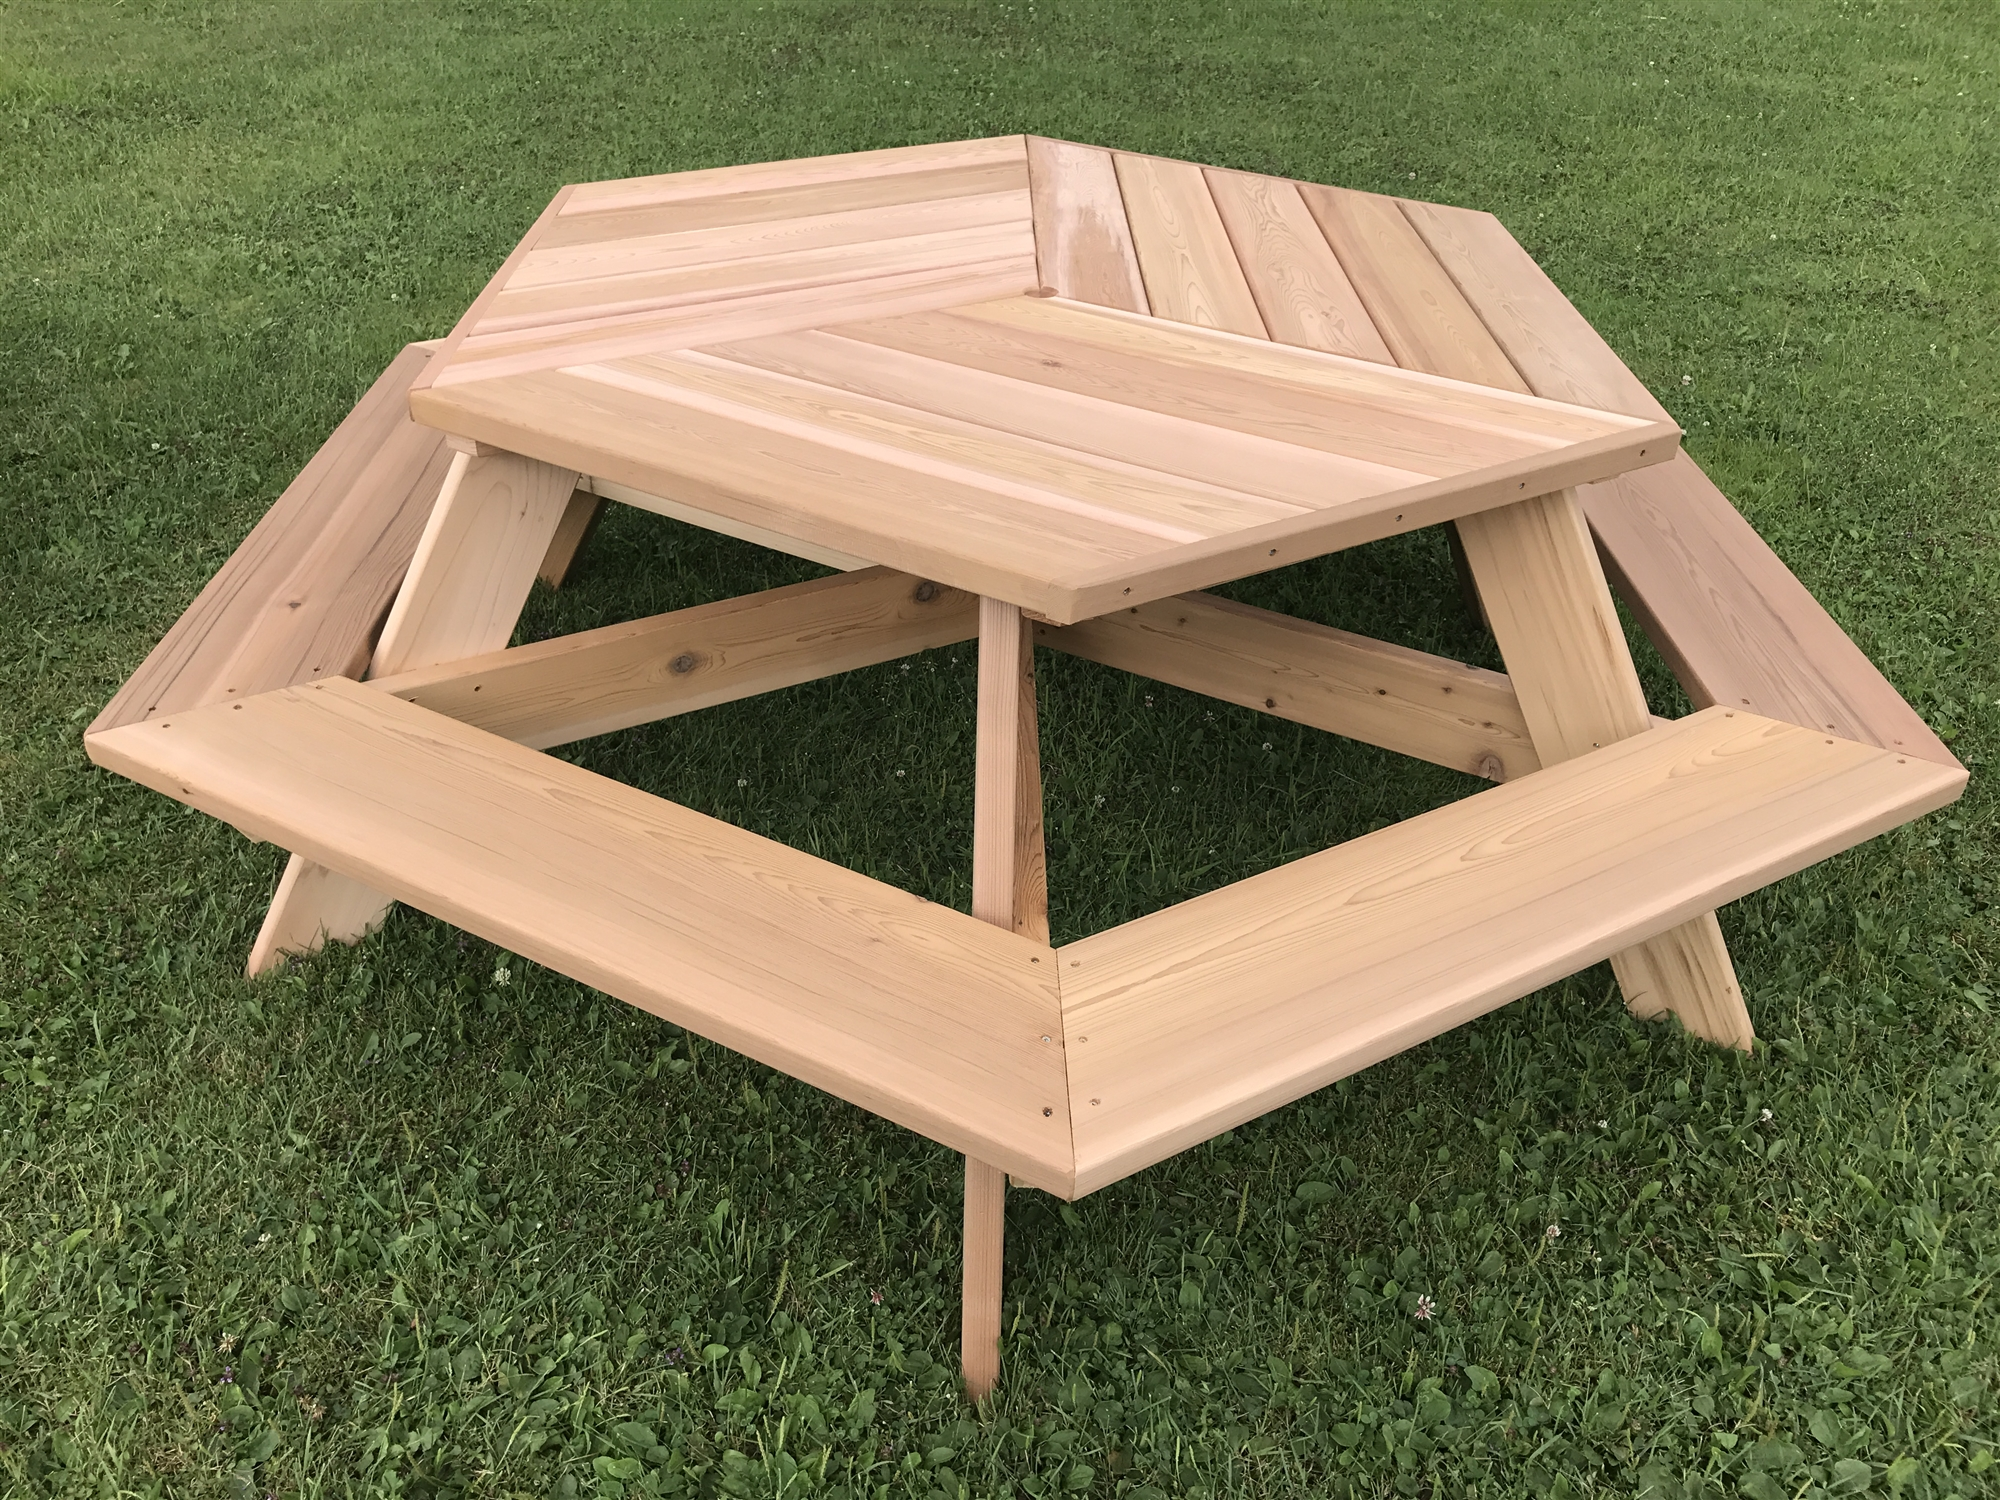 Hexagonal Cedar Picnic Table W AllAround Seating - How to stain a picnic table